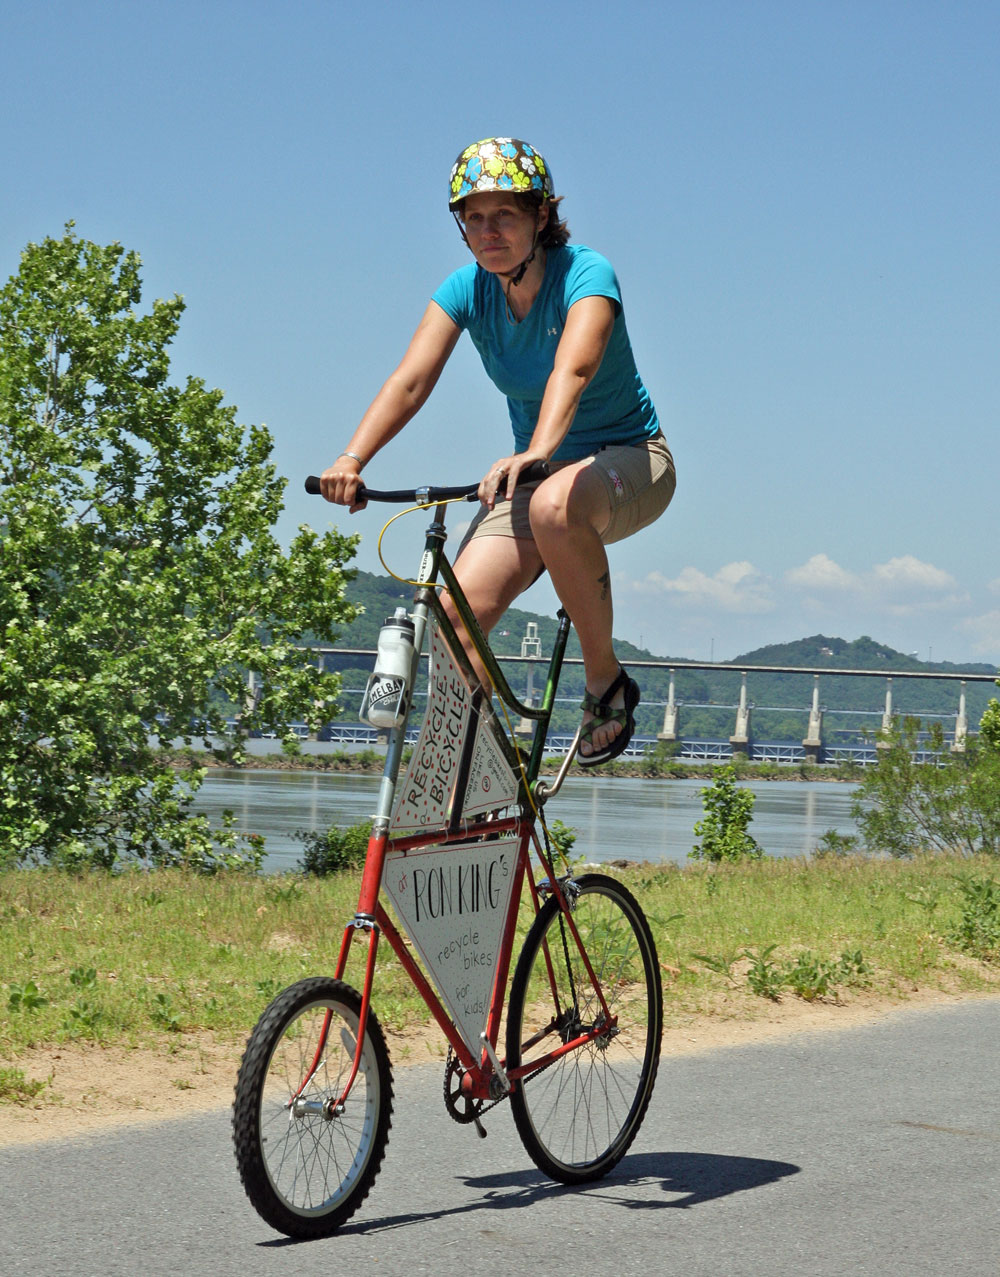 How do you use the Arkansas River Trail?